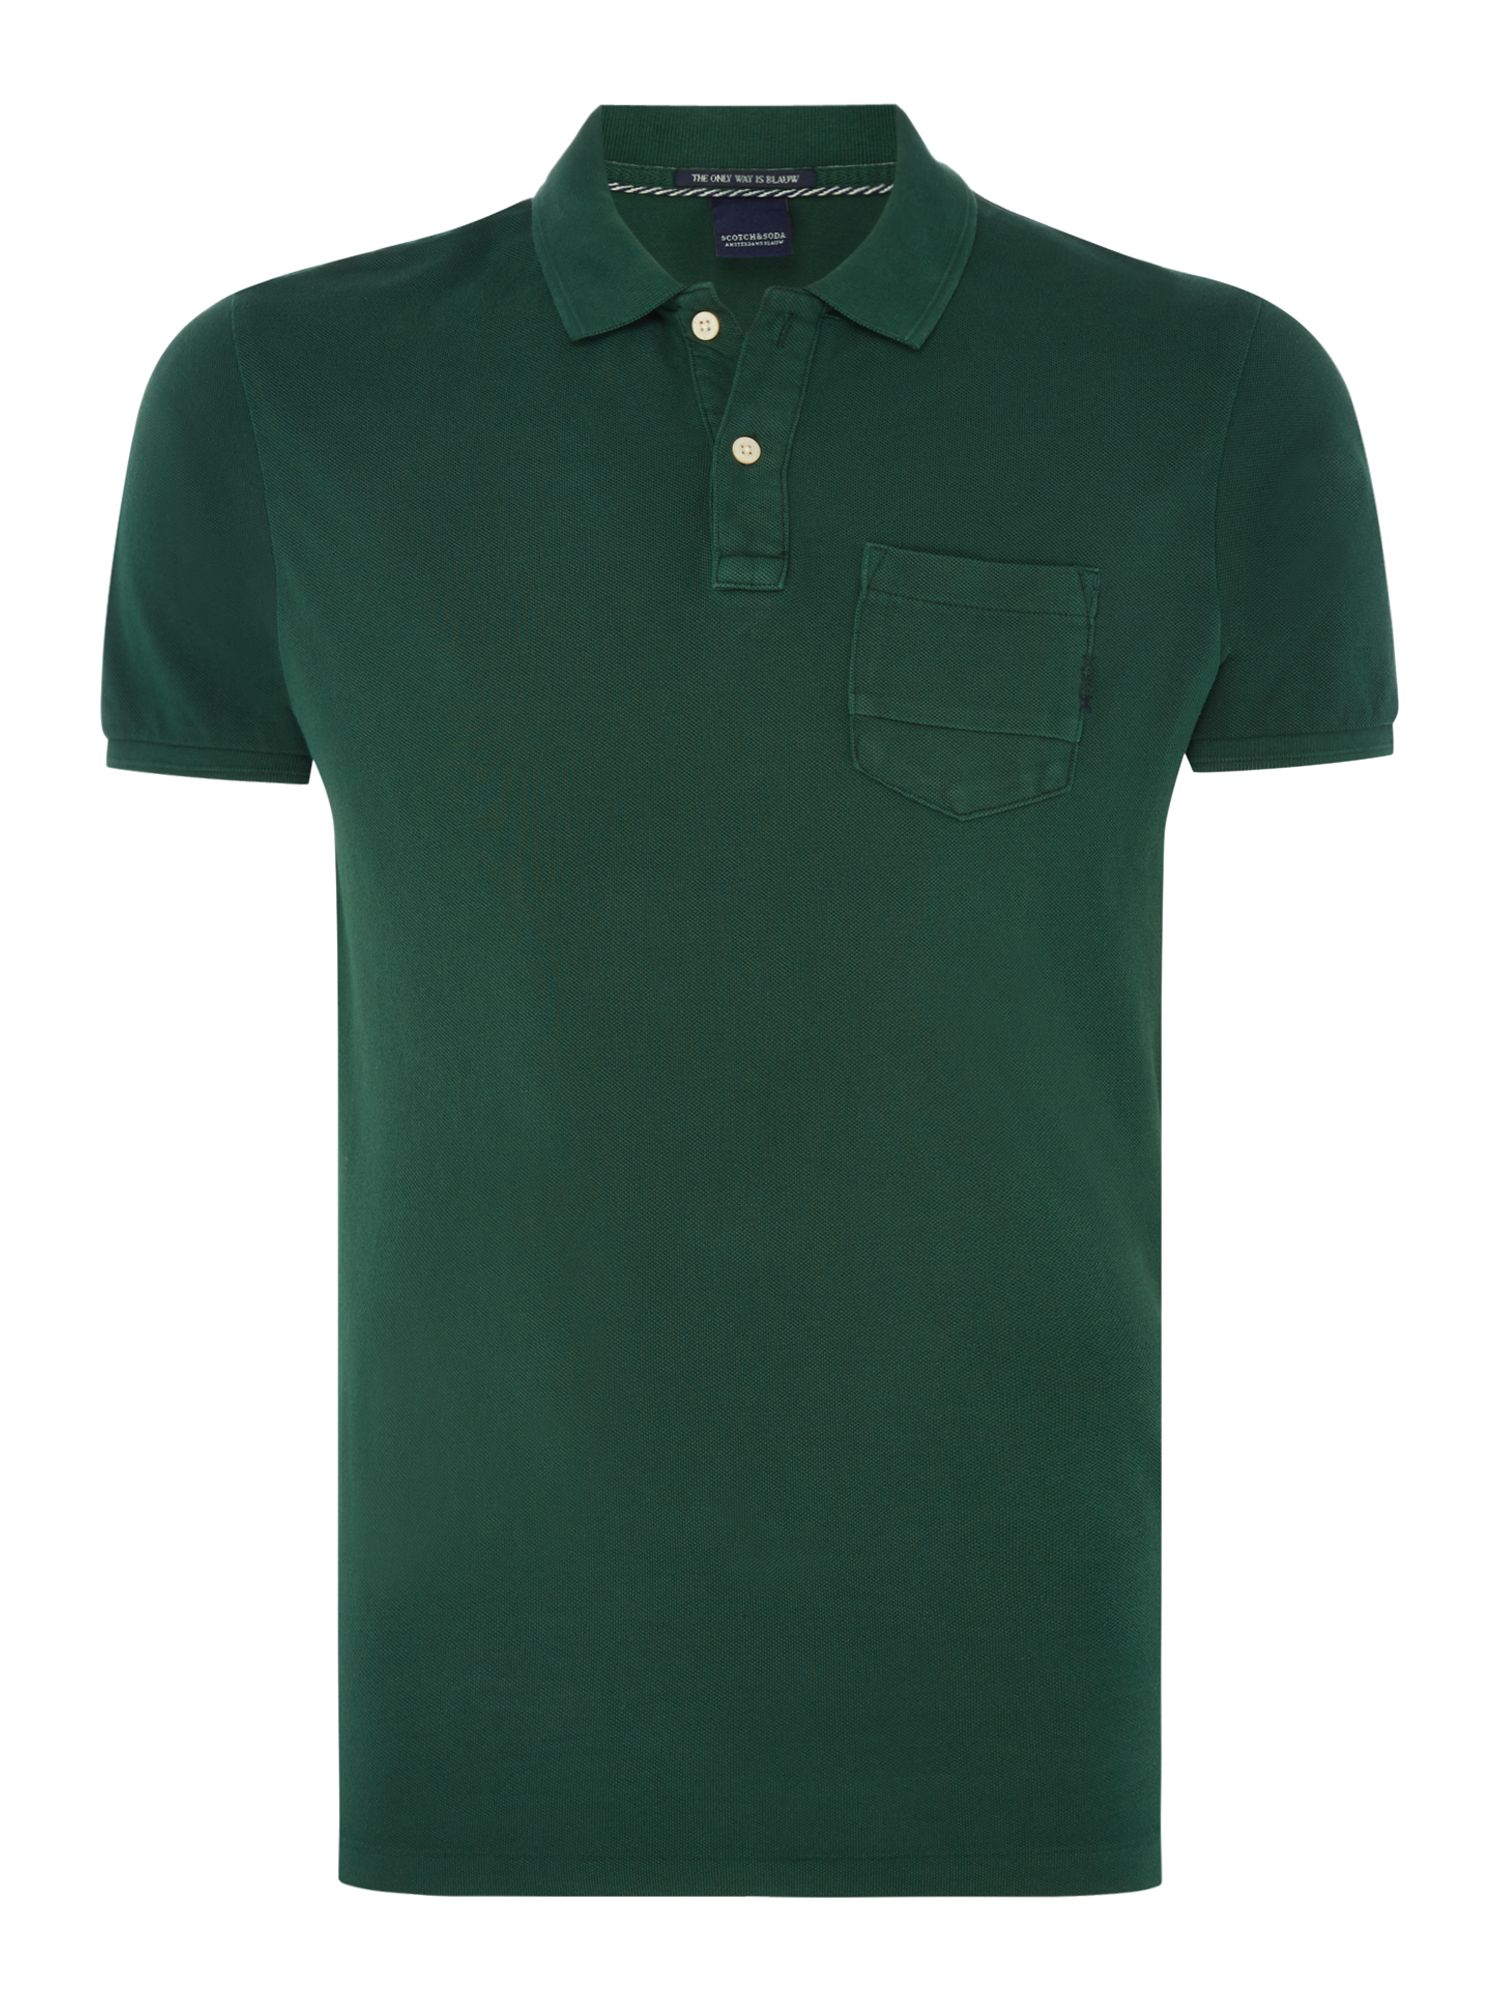 Men's Scotch & Soda Garment Dyed Polo with XXX, Pastel Green